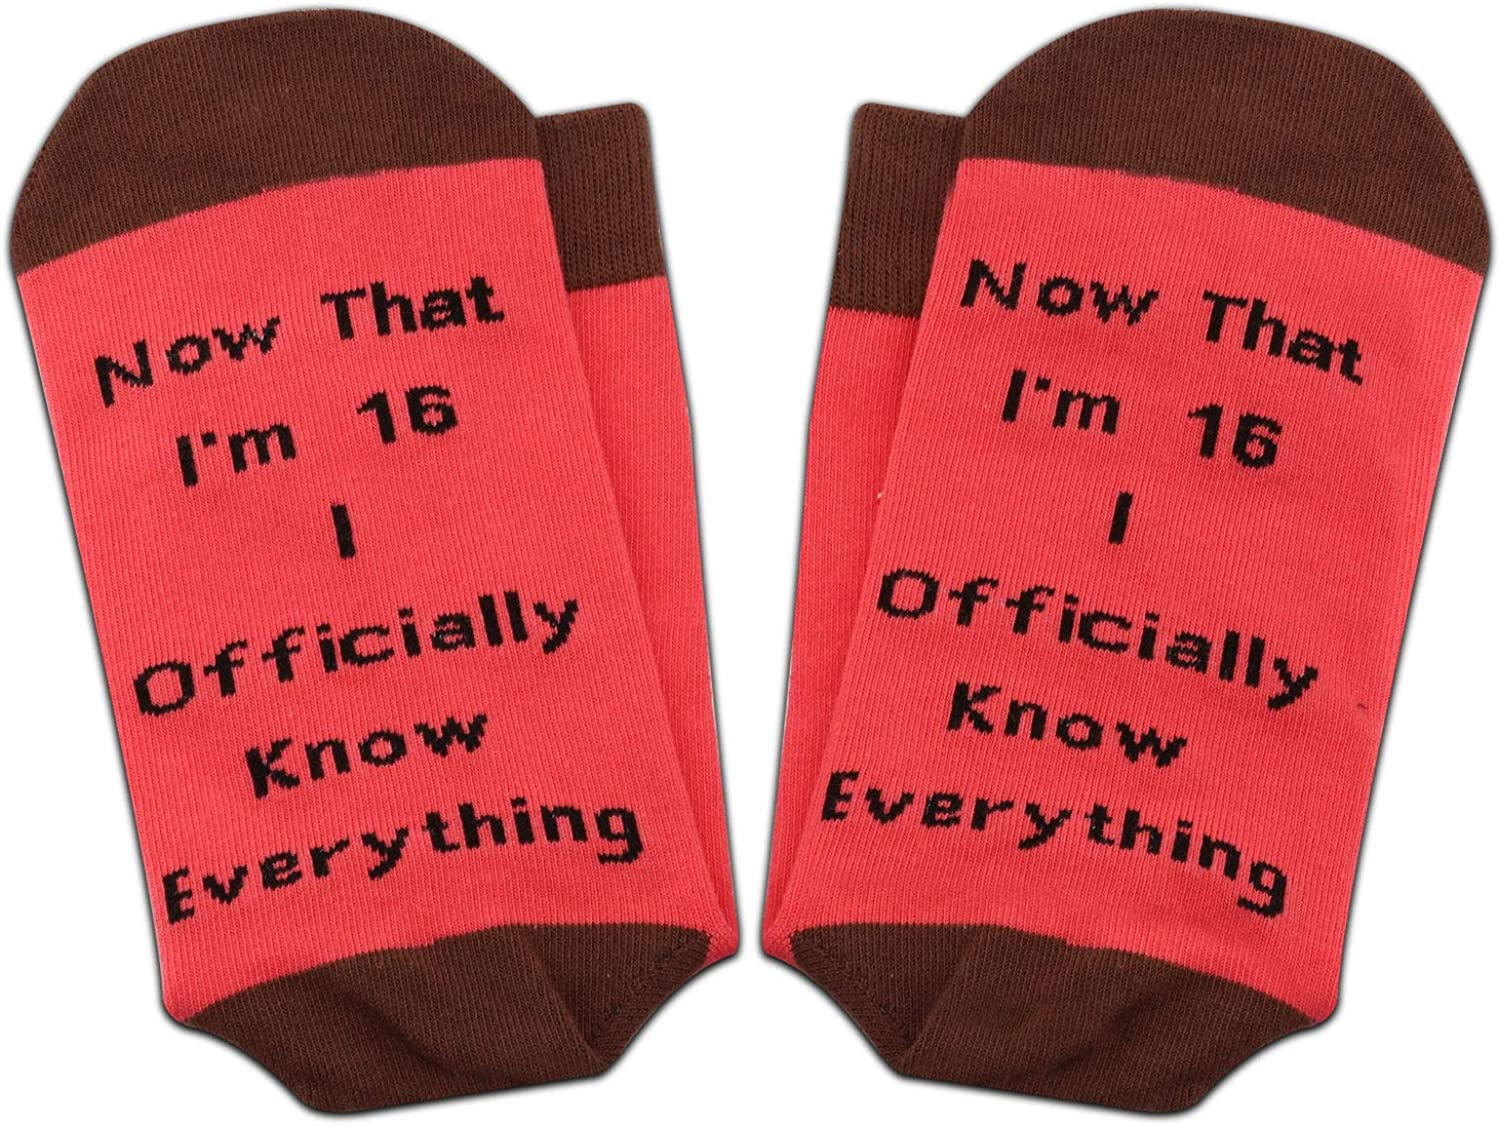 PXTIDY Sweet 16 Gift 16th Birthday Socks Now That I/'m 16 Officially Know Anything Socks Gift for 16 Years Old Girl